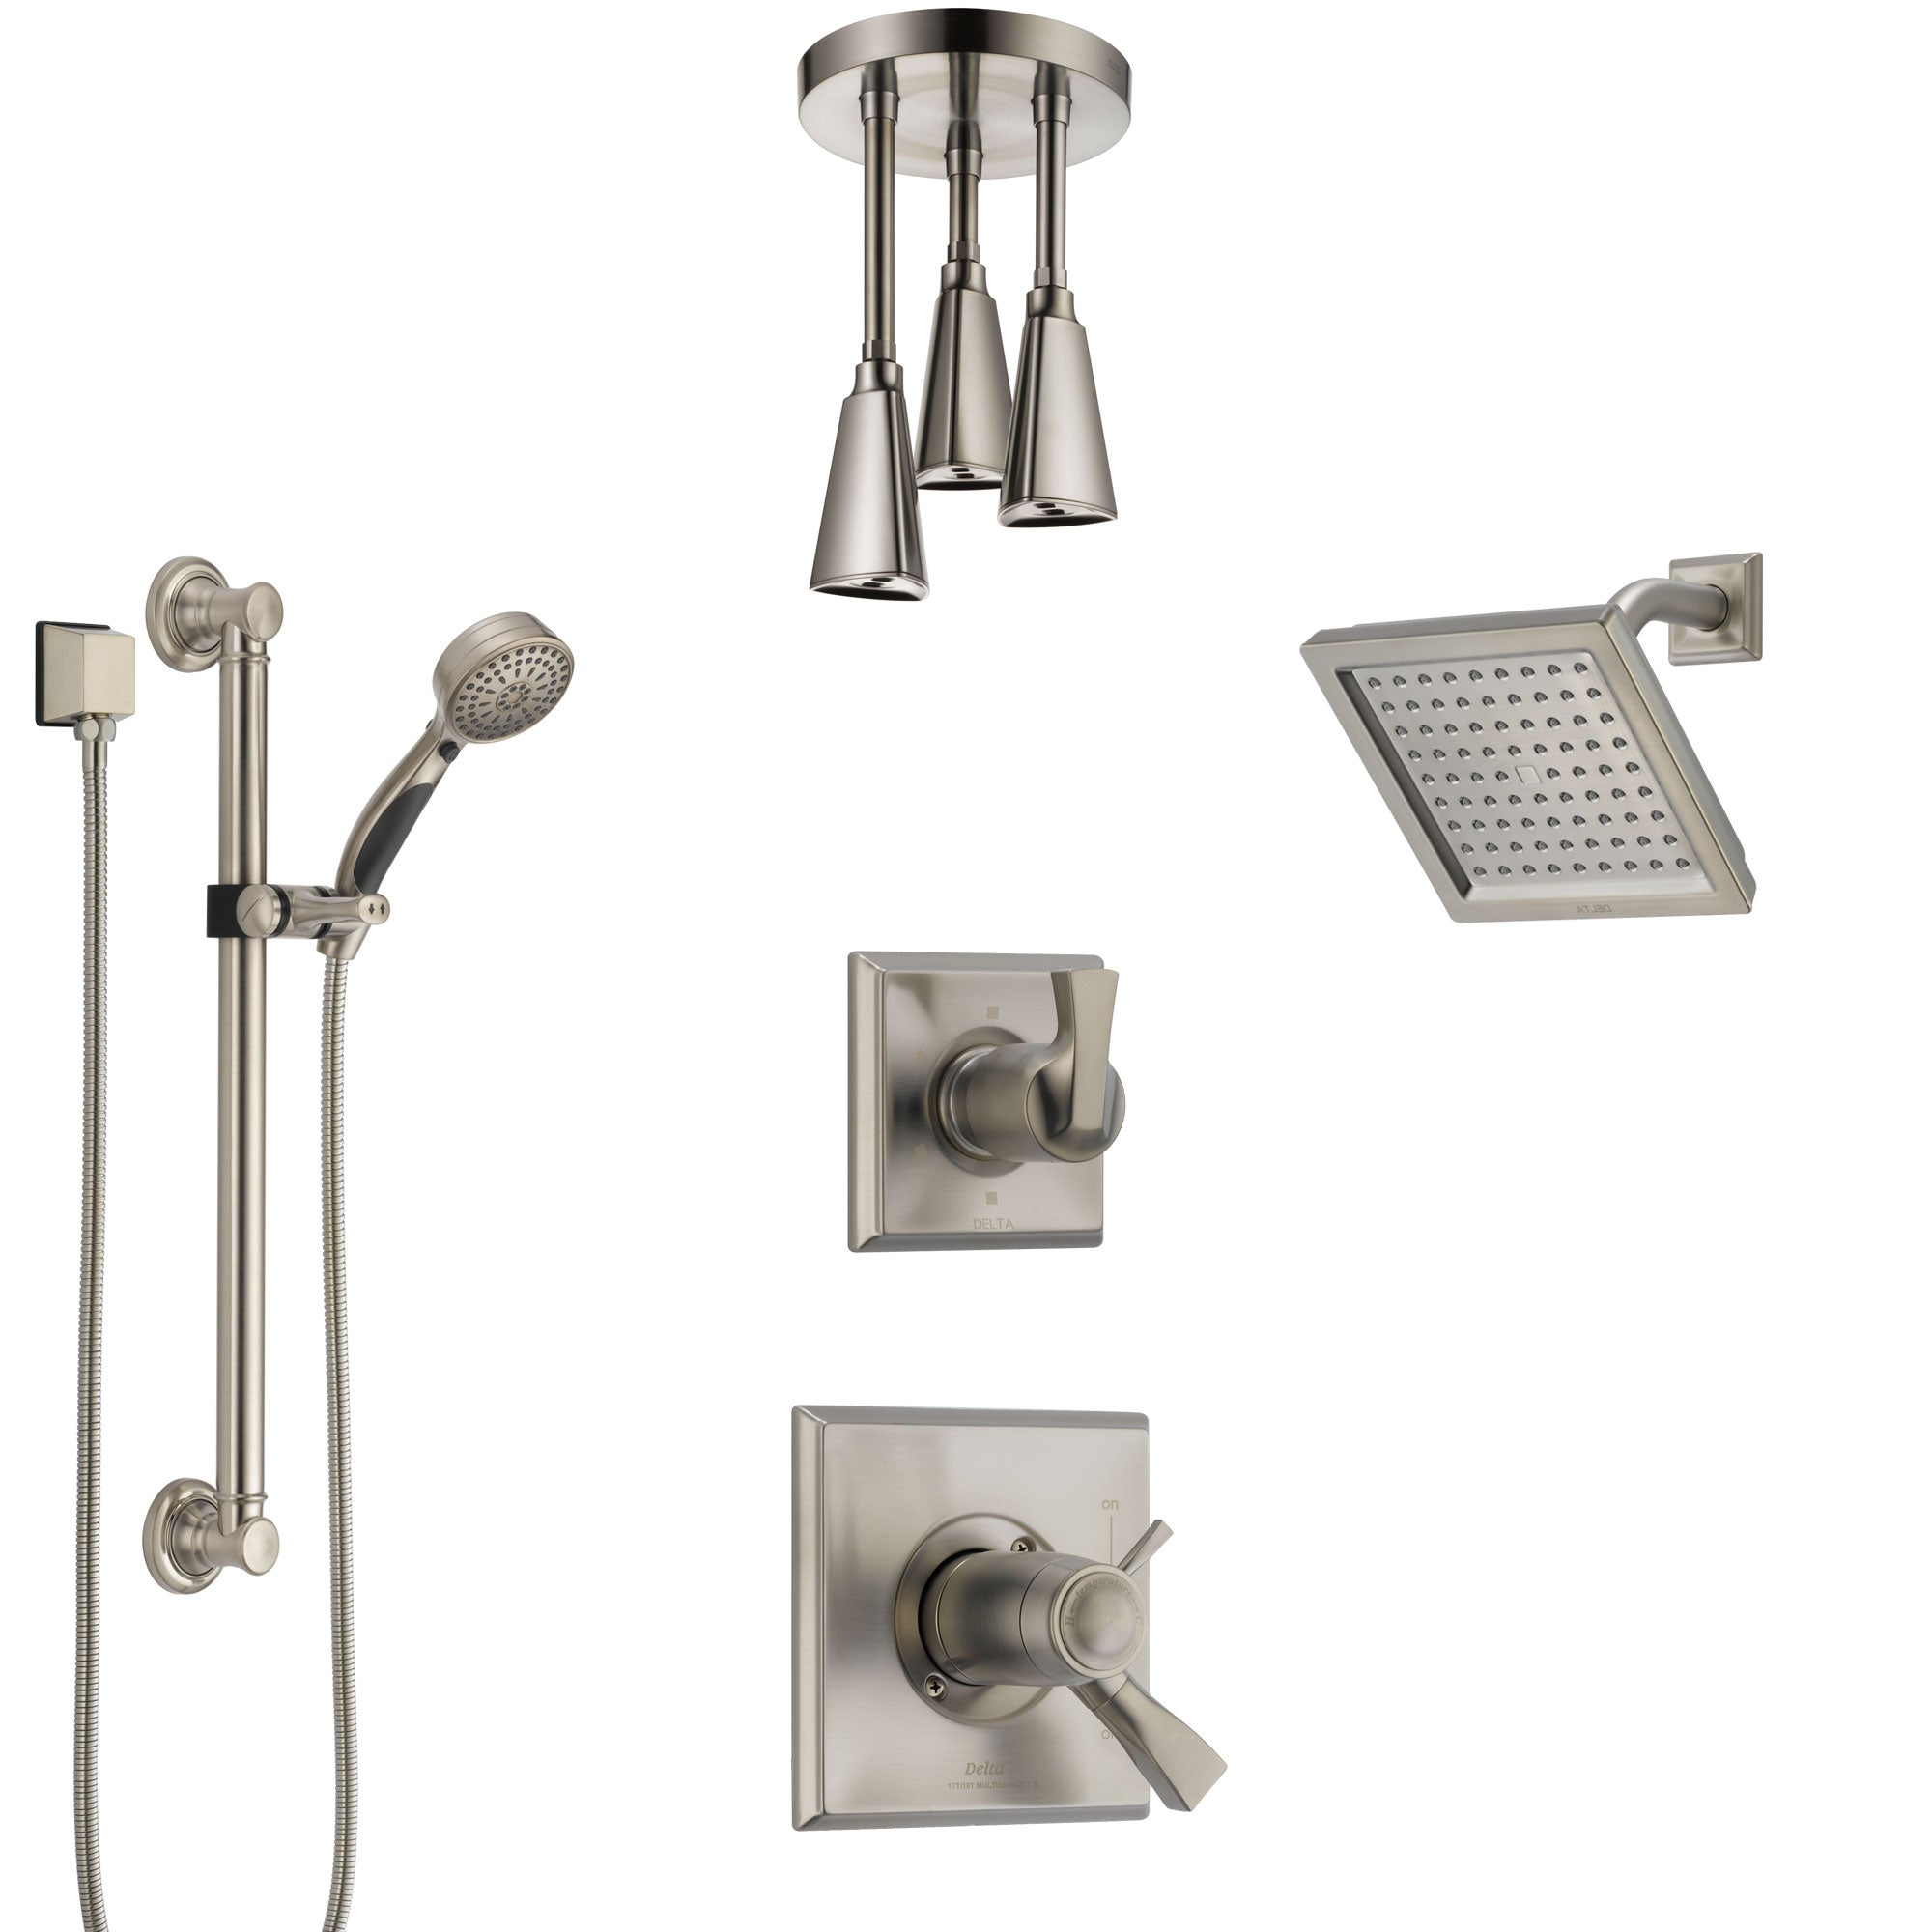 Delta Dryden Dual Thermostatic Control Stainless Steel Finish Shower  System, Diverter, Showerhead, Ceiling